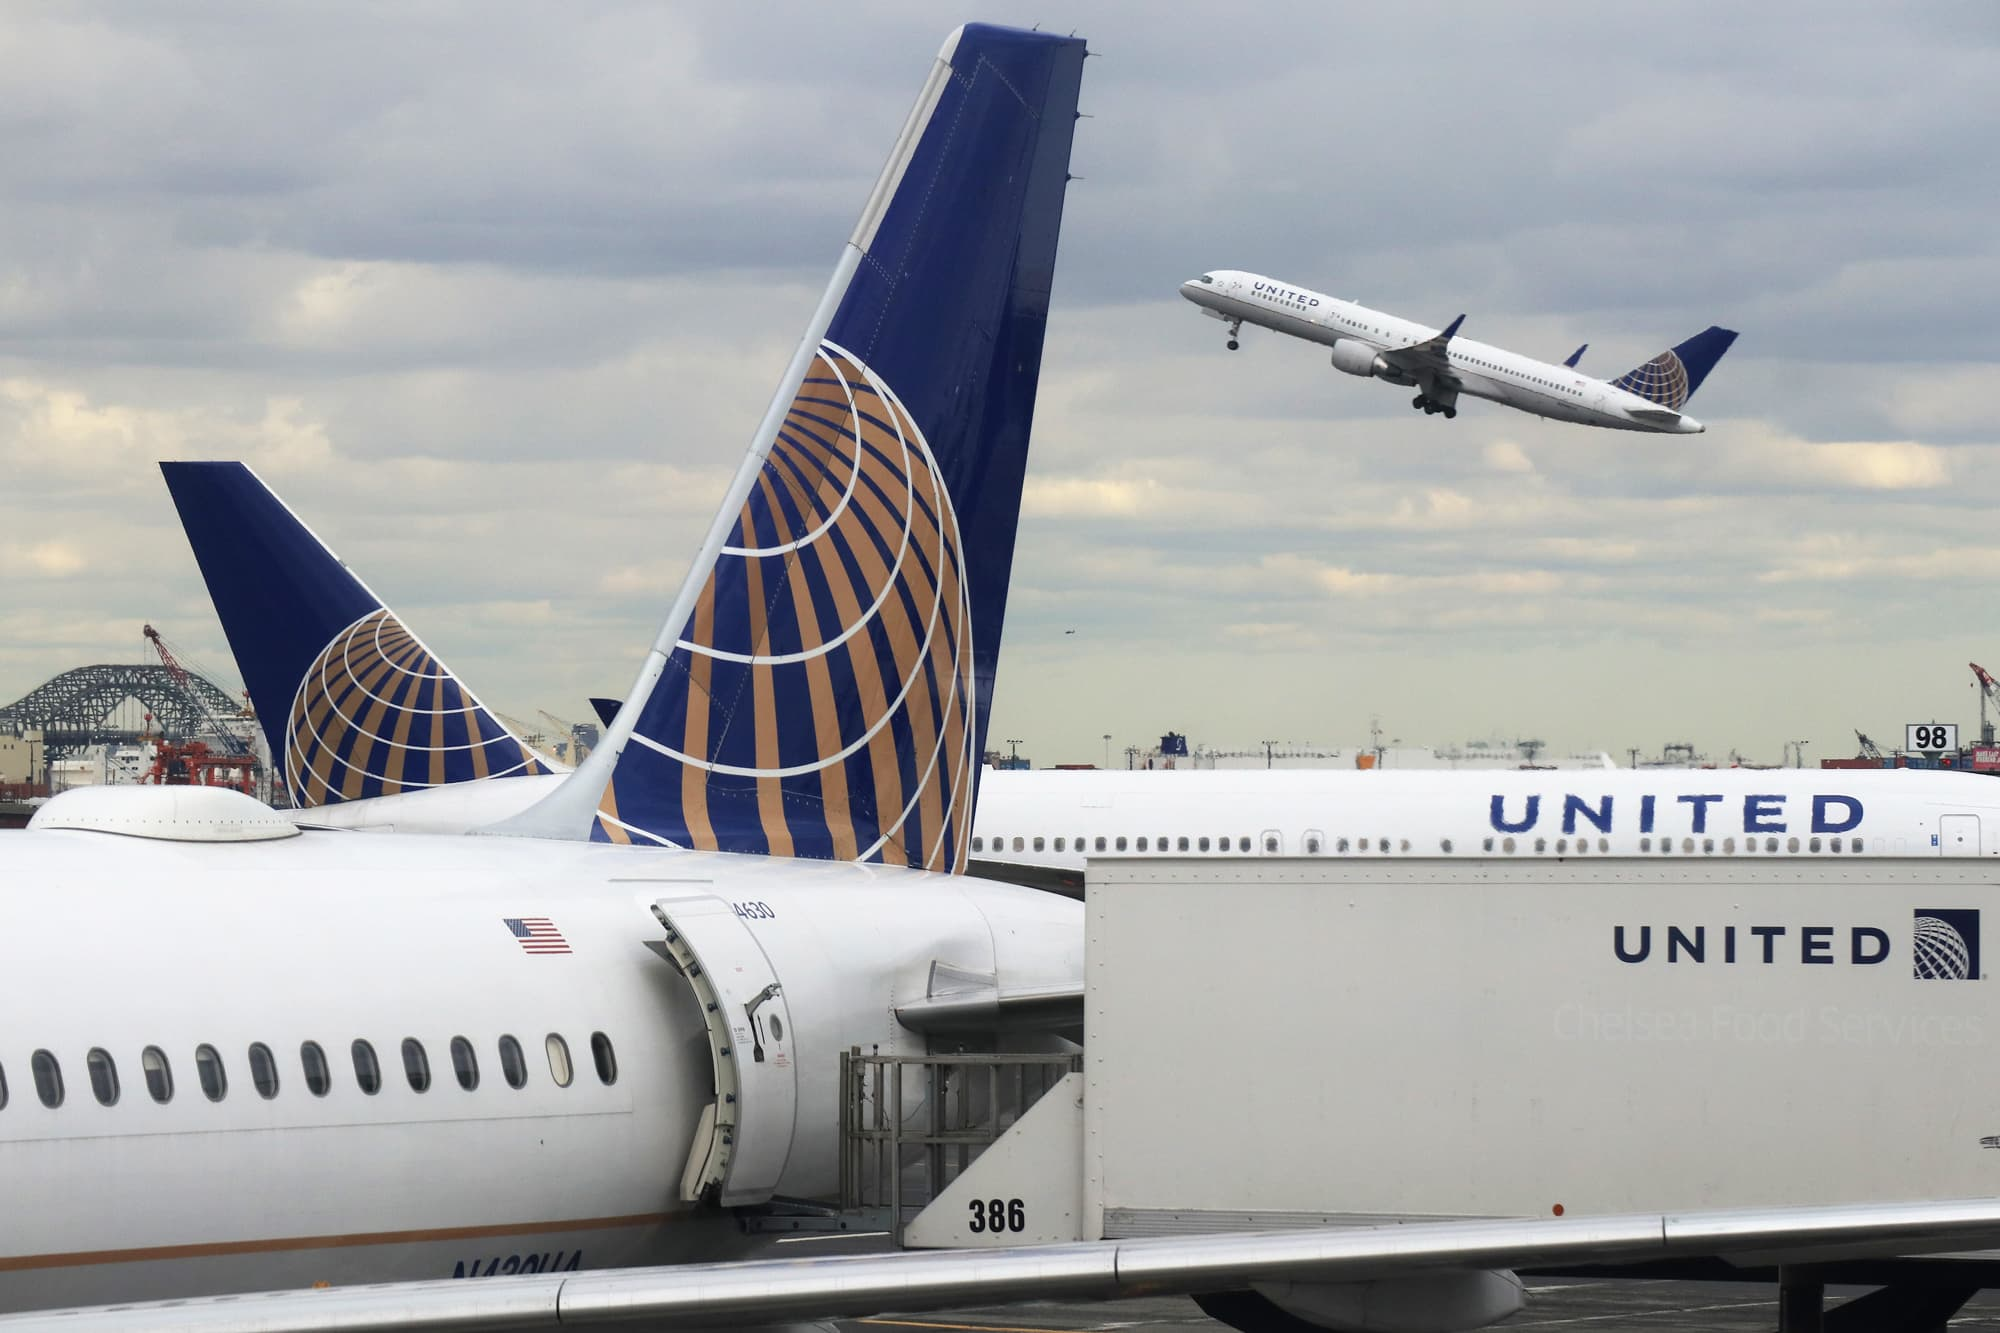 United Airlines shares rise on improved earnings forecast, quarterly beat